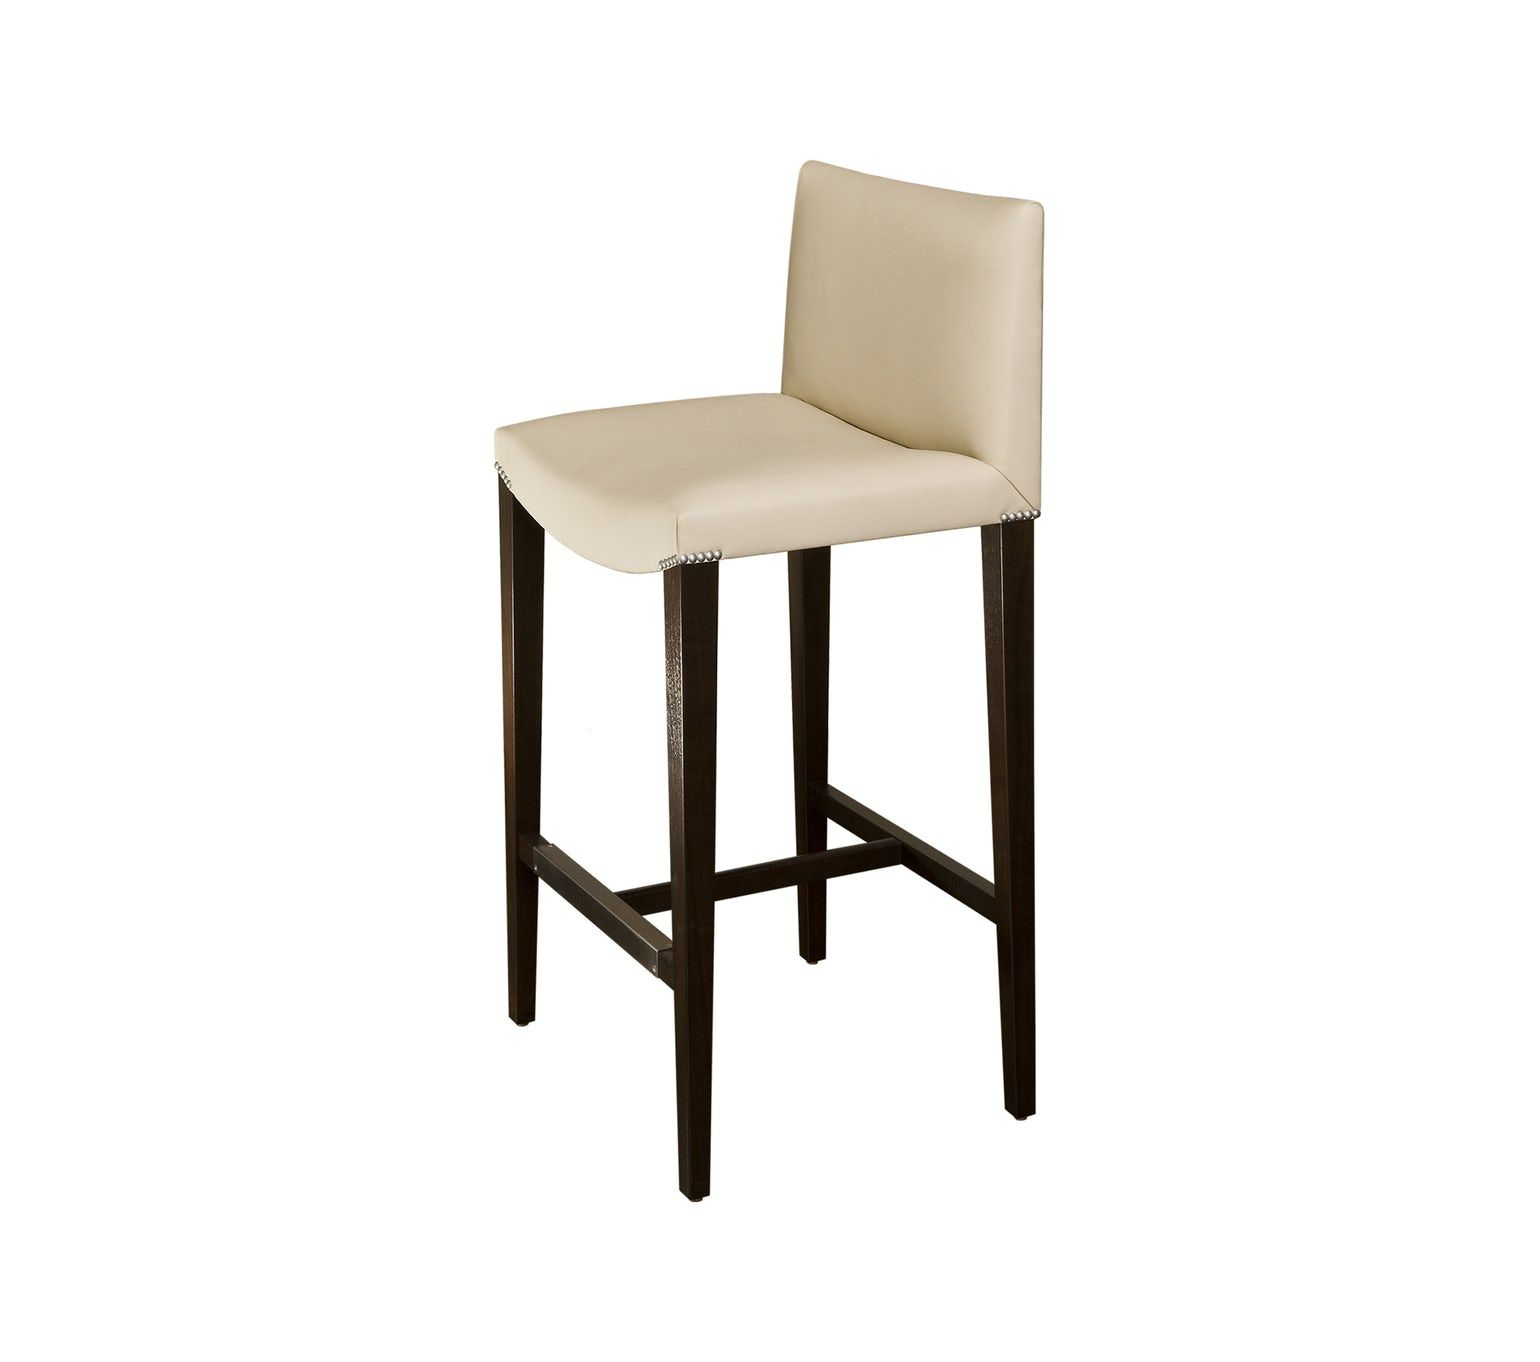 Discrete Bar Chair Contemporary Transitional Midcentury Modern